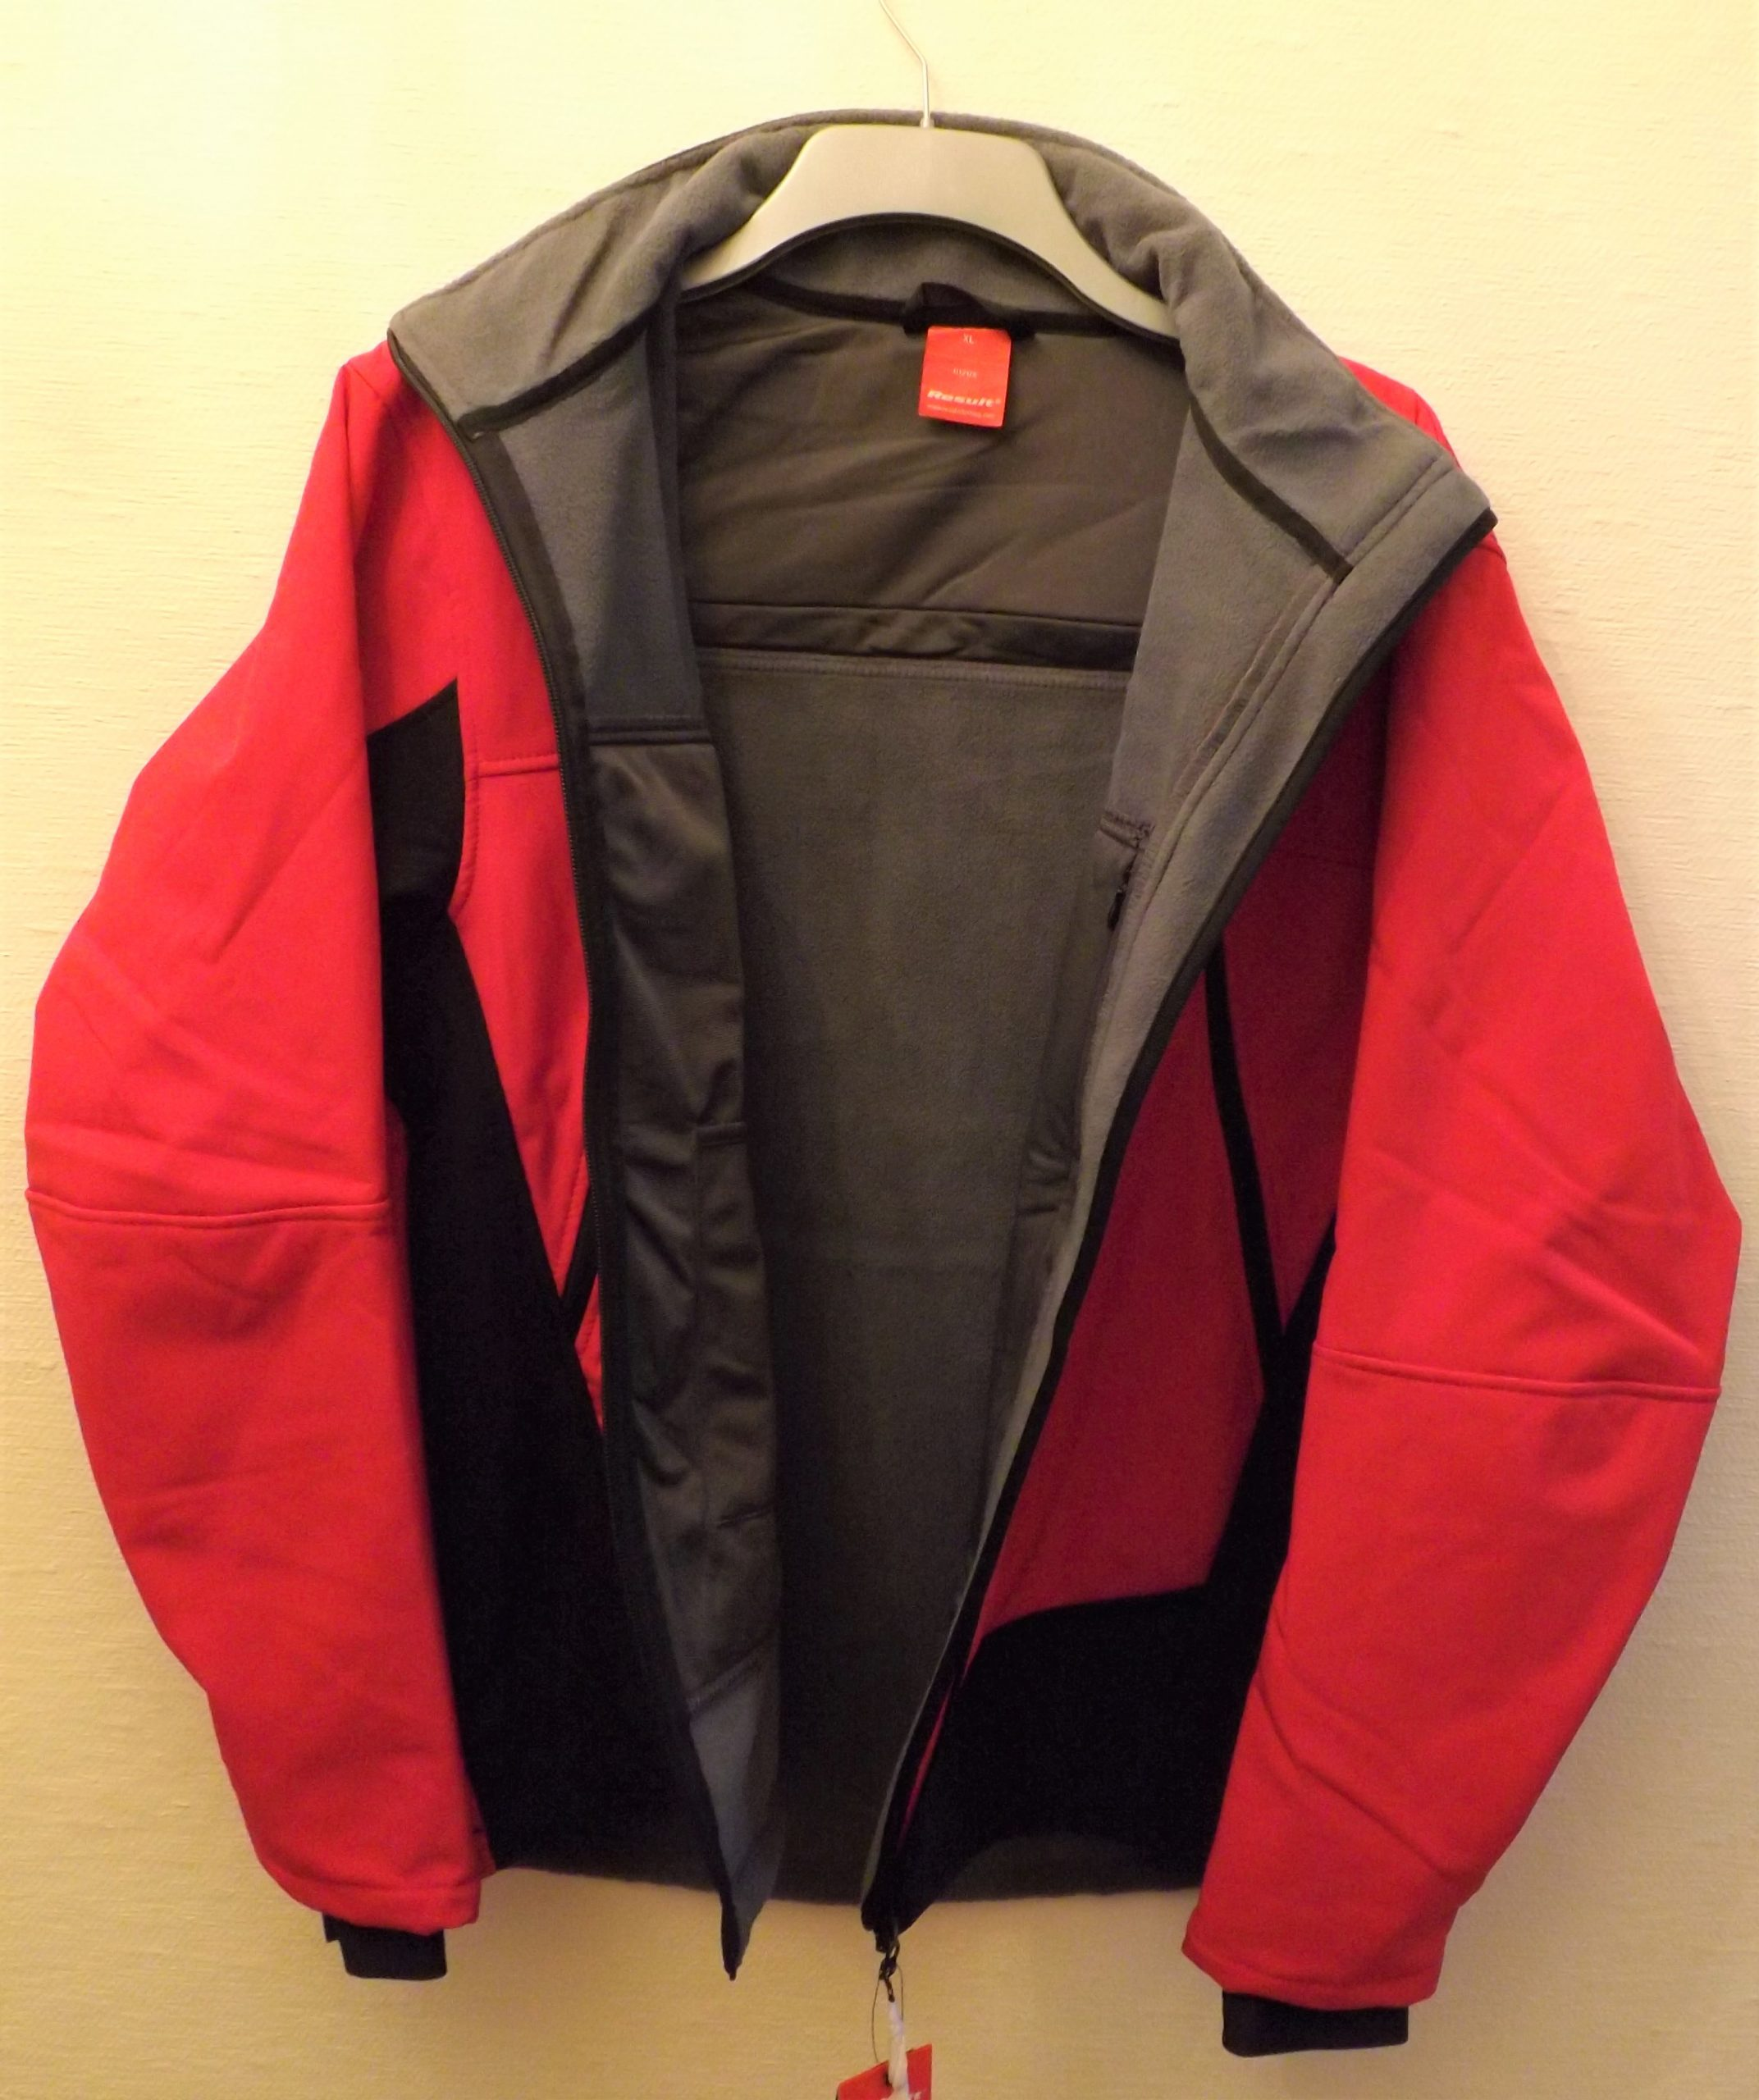 BENCHREST UK SOFT SHELL WATERPROOF BREATHABLE WINDPROOF RED JACKET